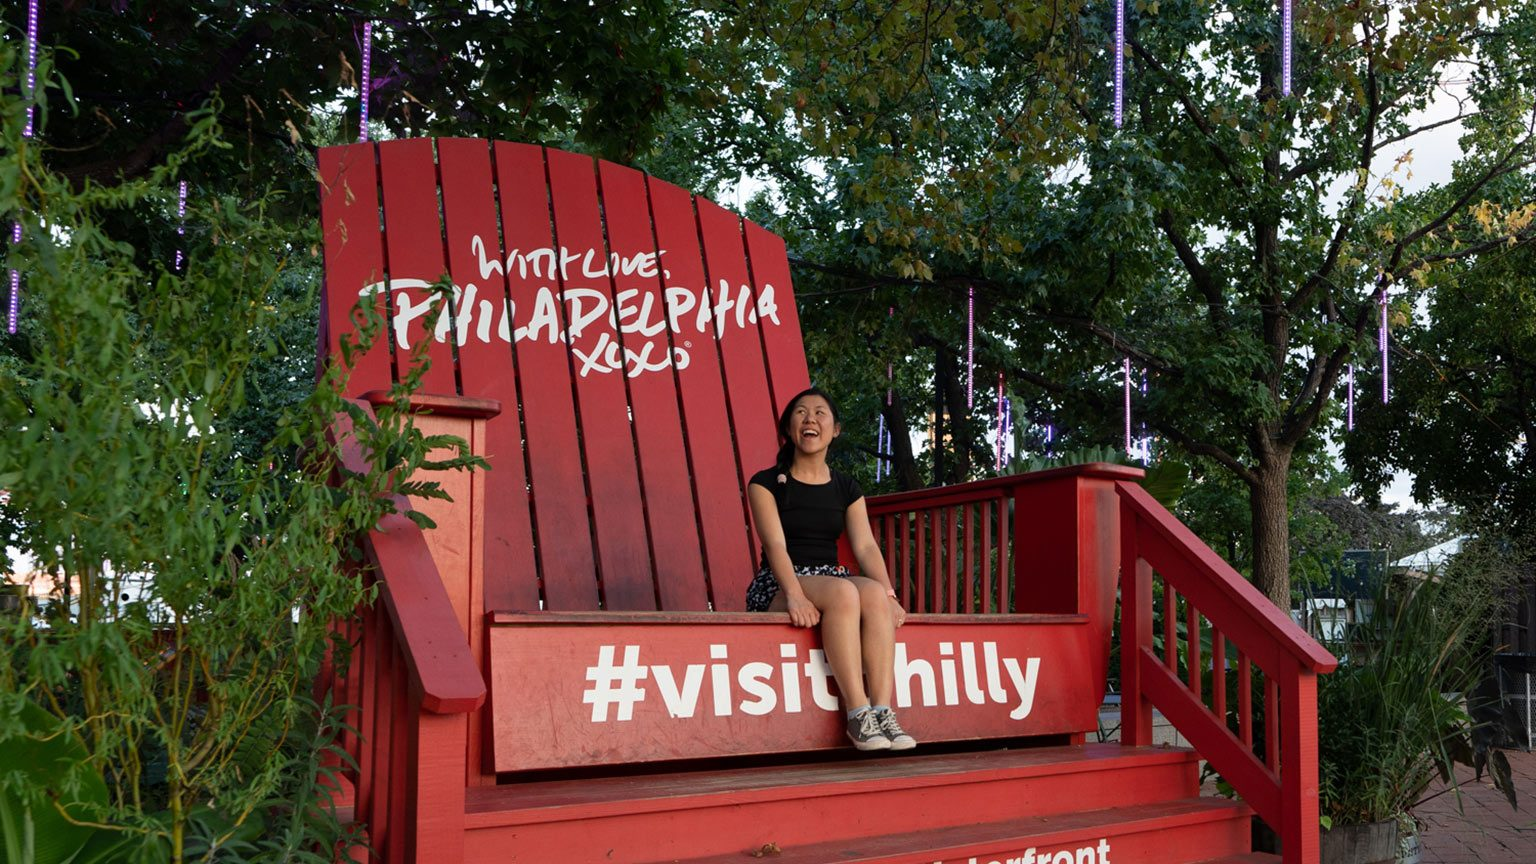 Welcome to Philadelphia chair.